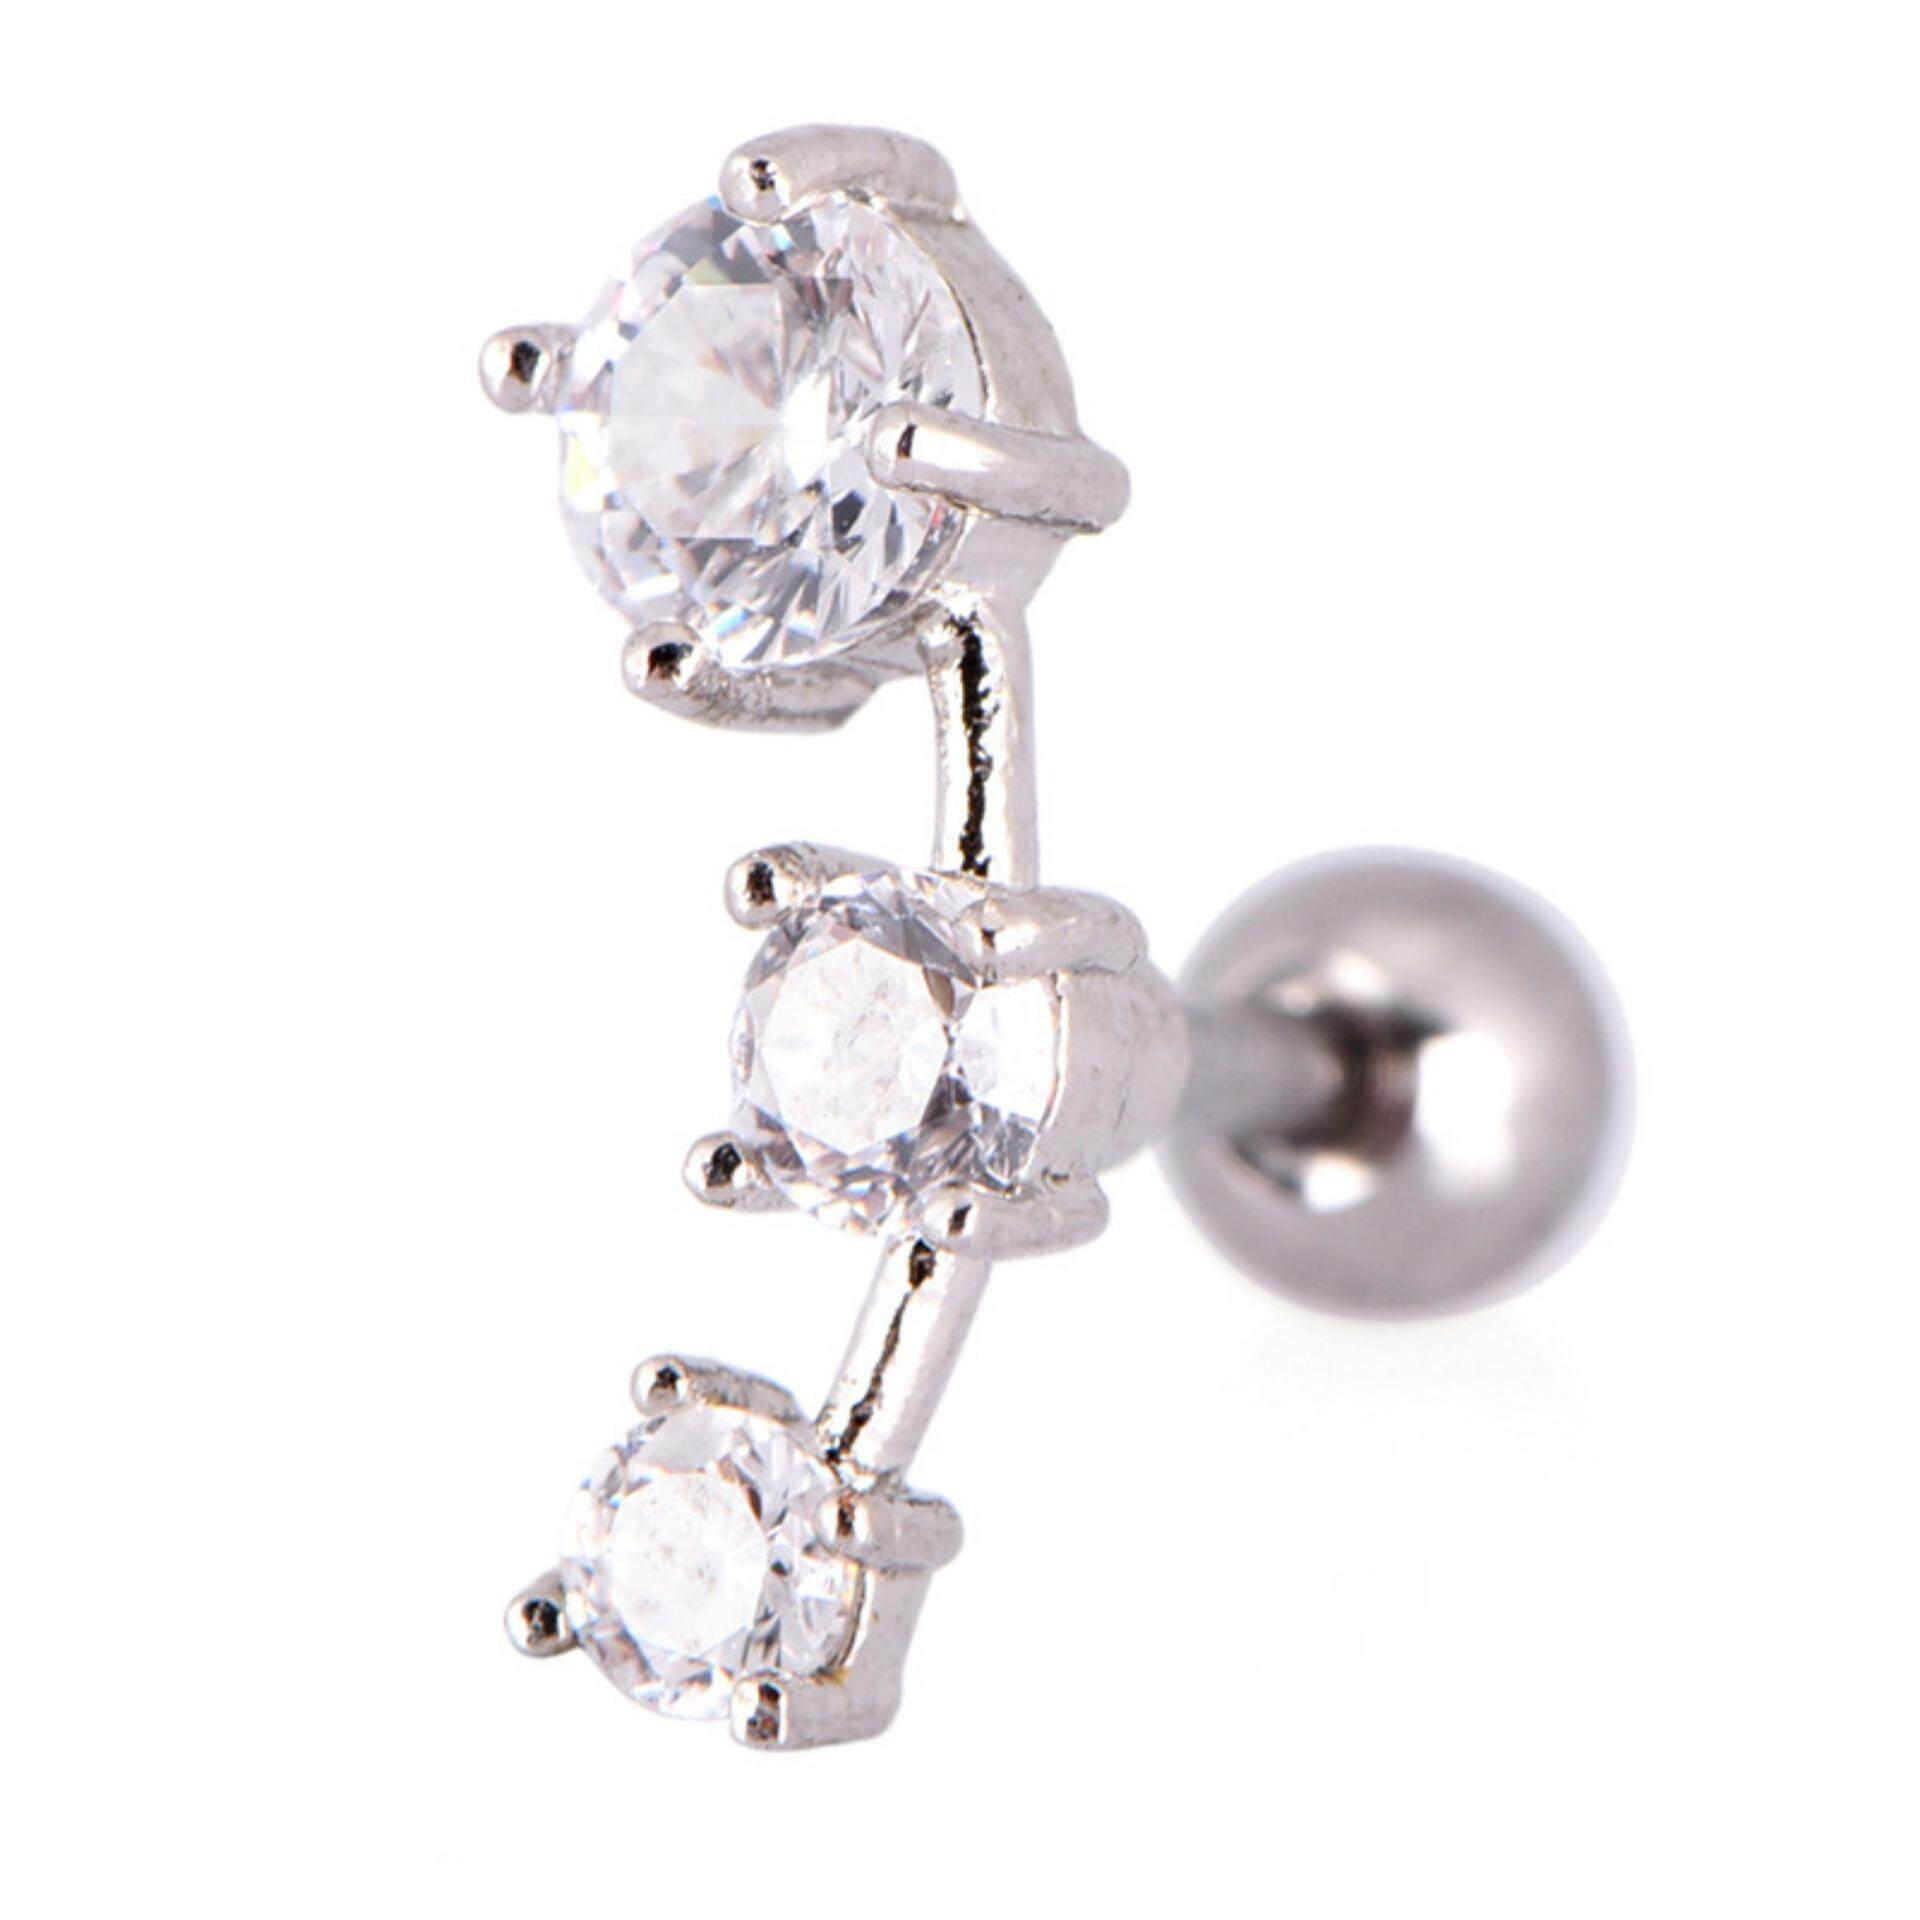 Cubic Zirconia Steel Barbell Ear Tragus Cartilage Helix Stud Earrings Piercing White